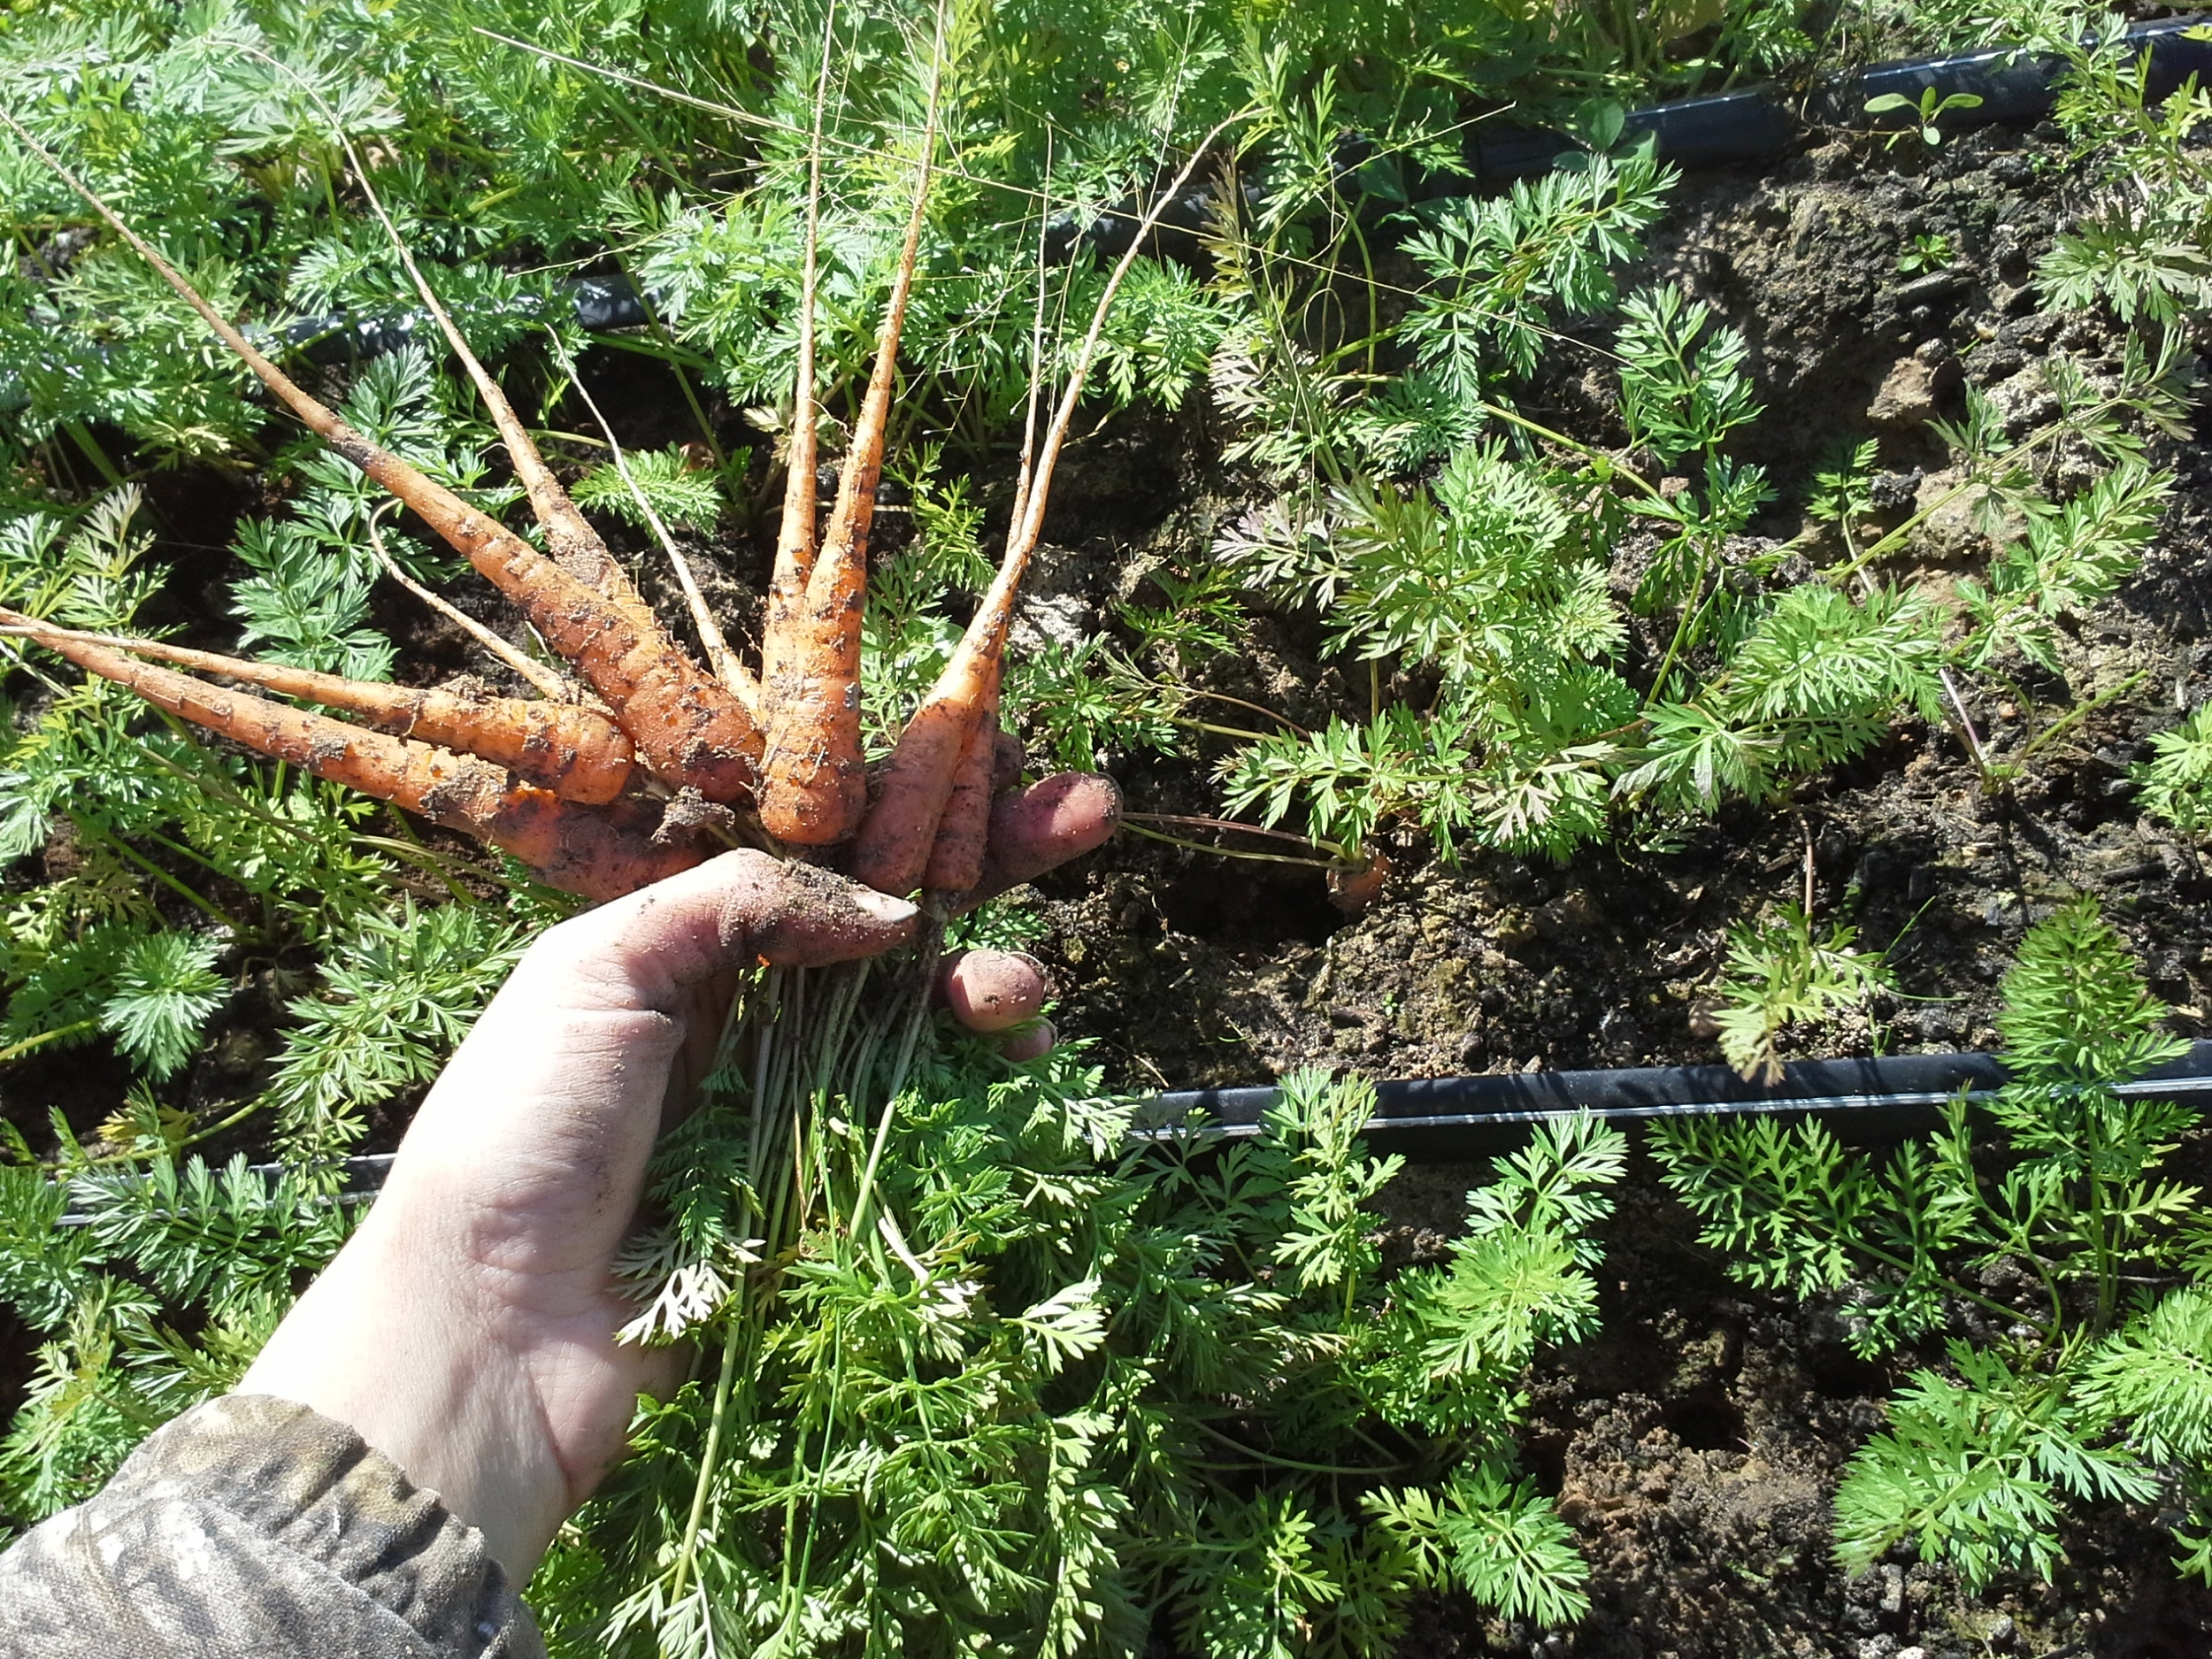 Baby carrots harvested early in the morning to be served for dinner as a Pelican Club special preview later that night.